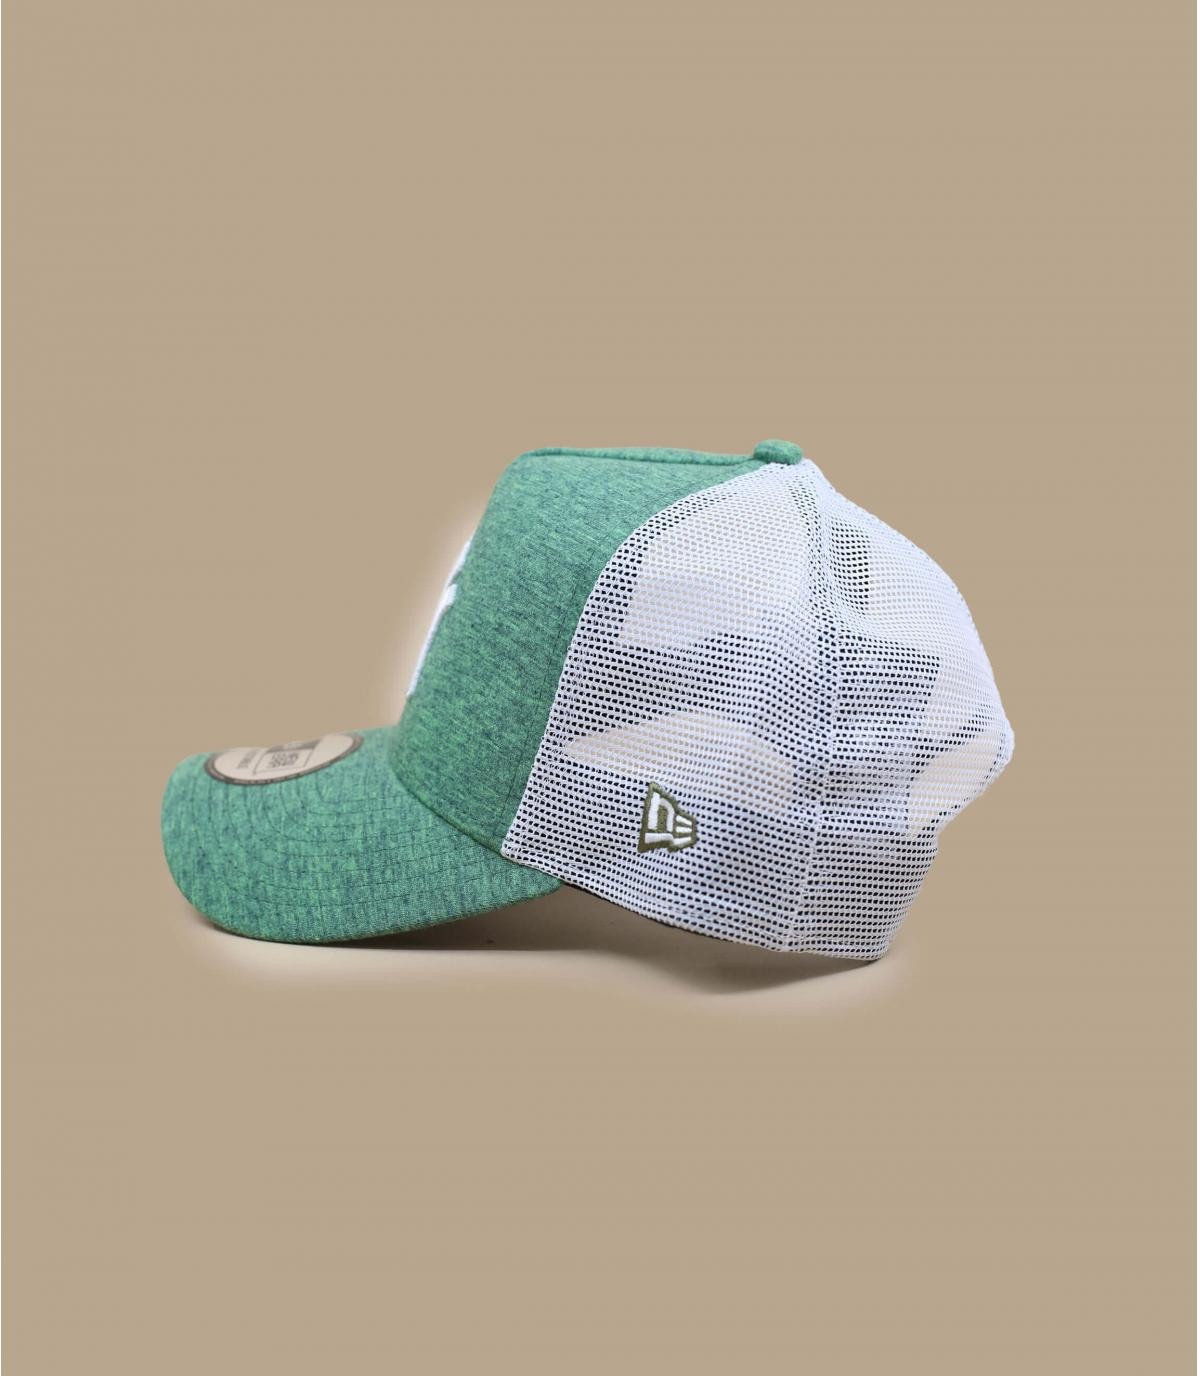 Détails Trucker Jersey NY green - image 3